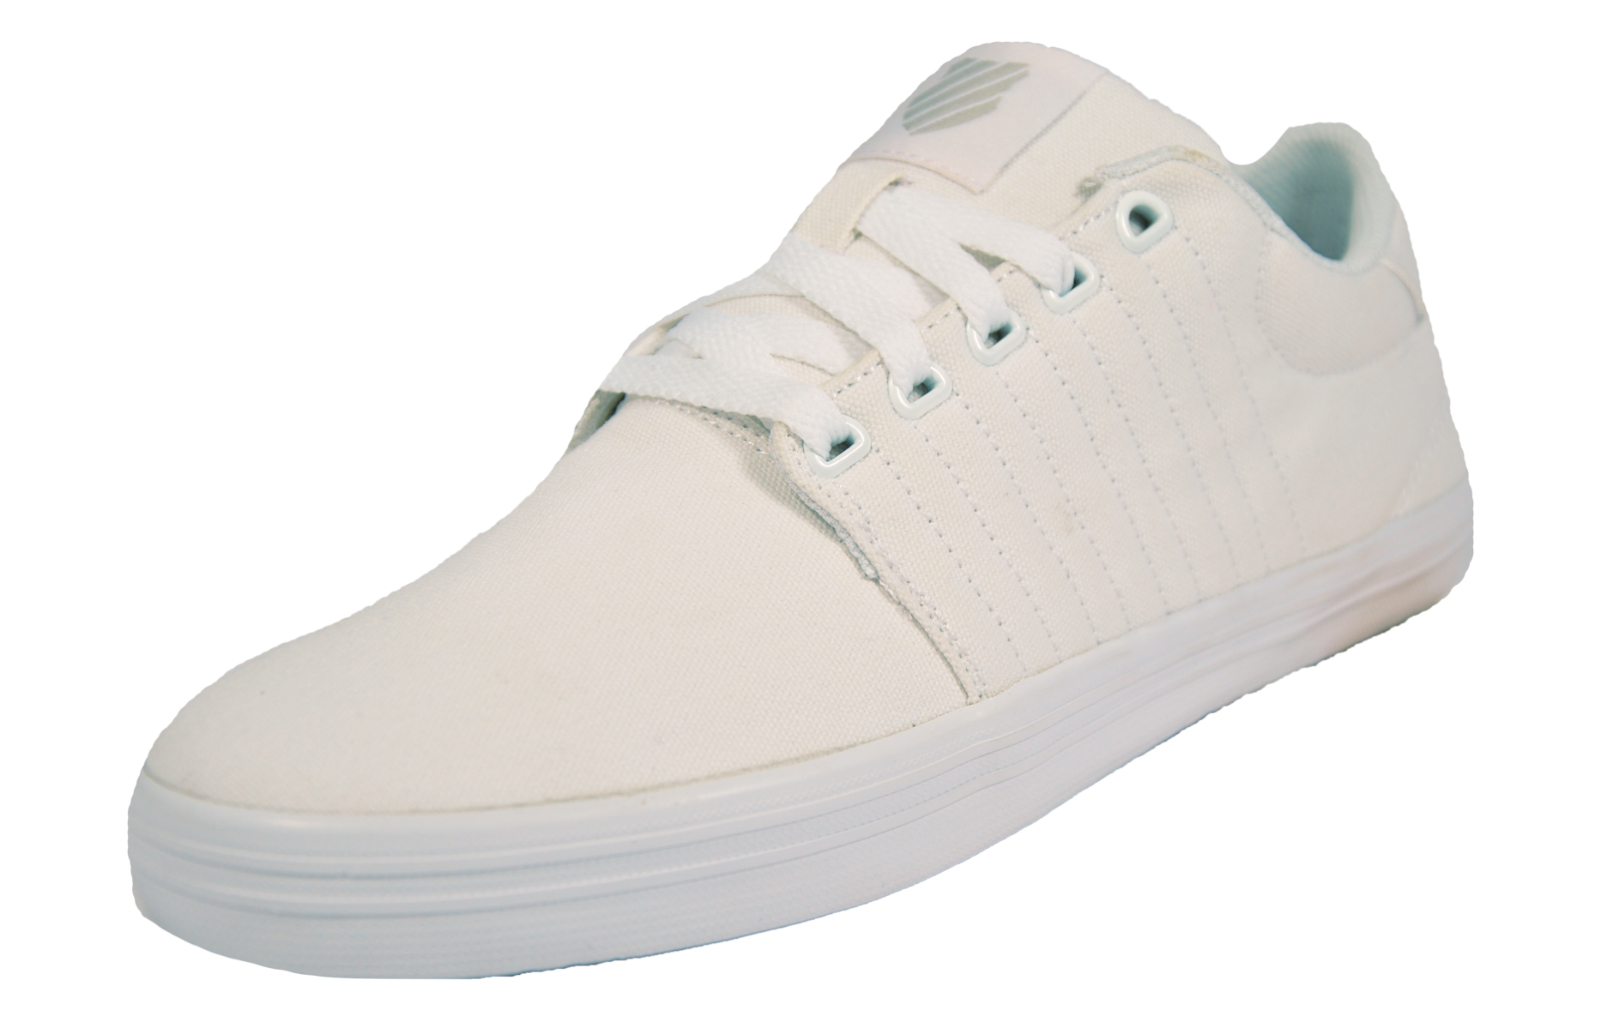 K Swiss Backspin Mens - KS185702